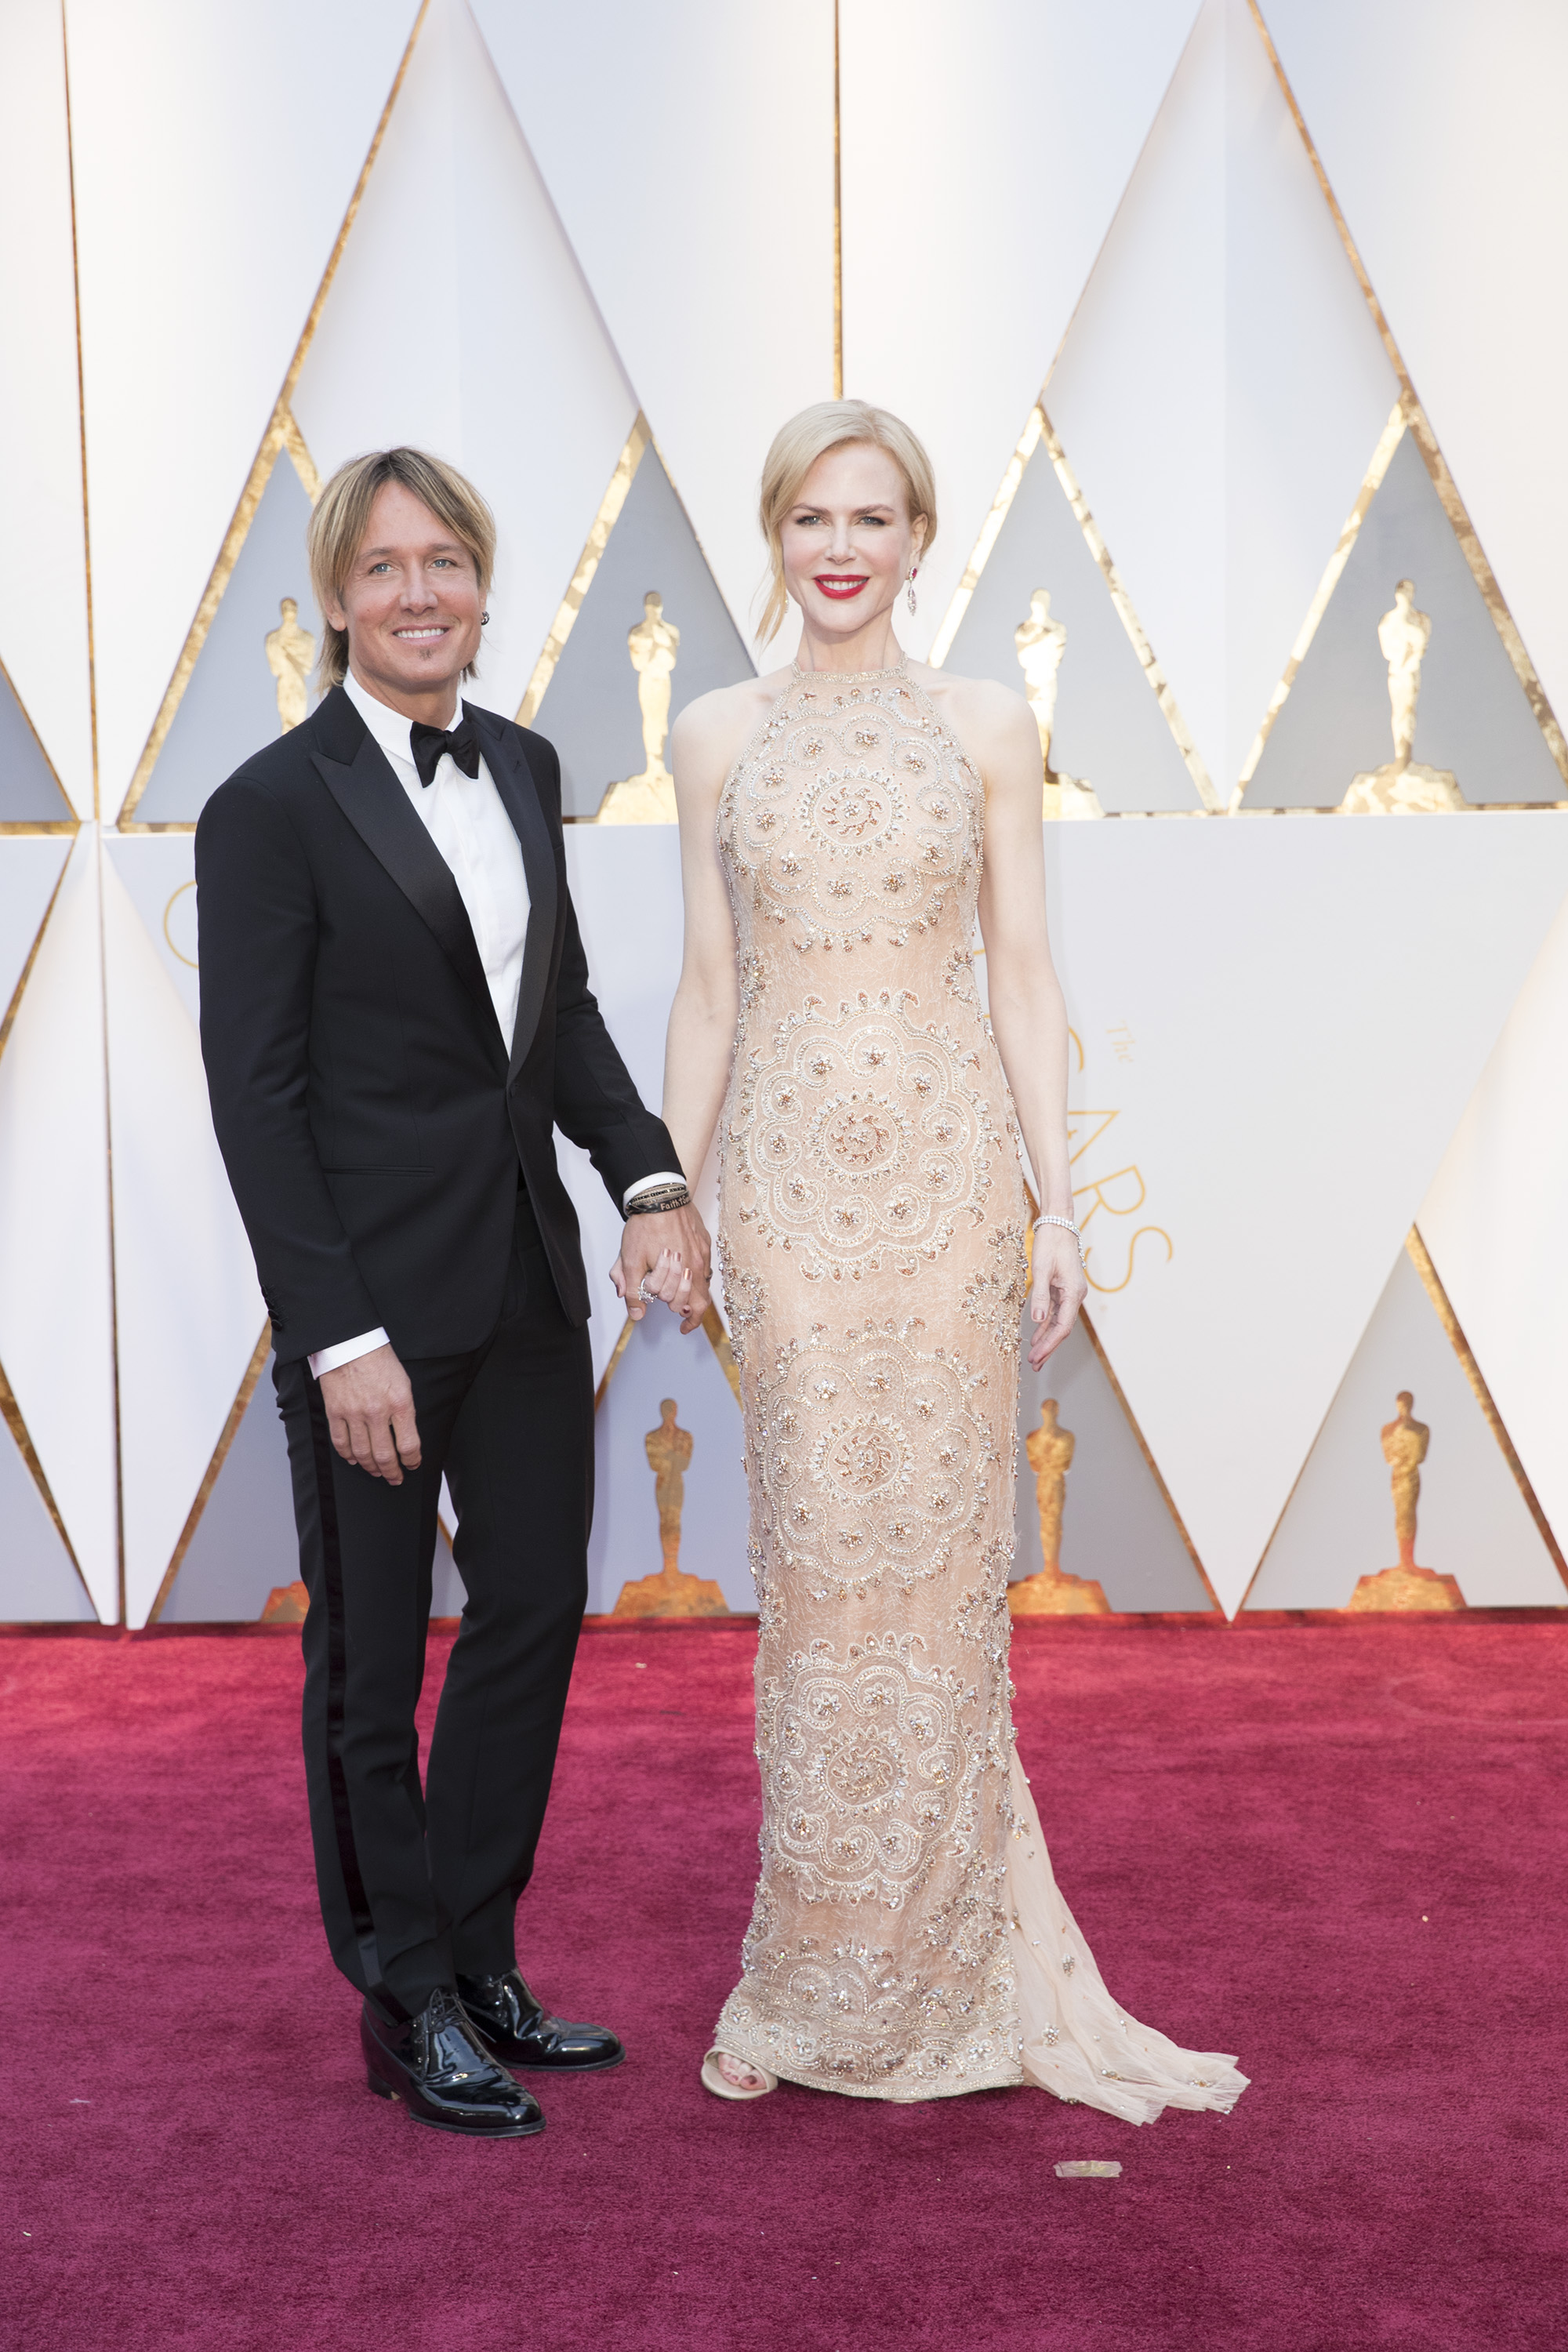 Keith Urban and Nicole Kidman attend the 2017 Oscars